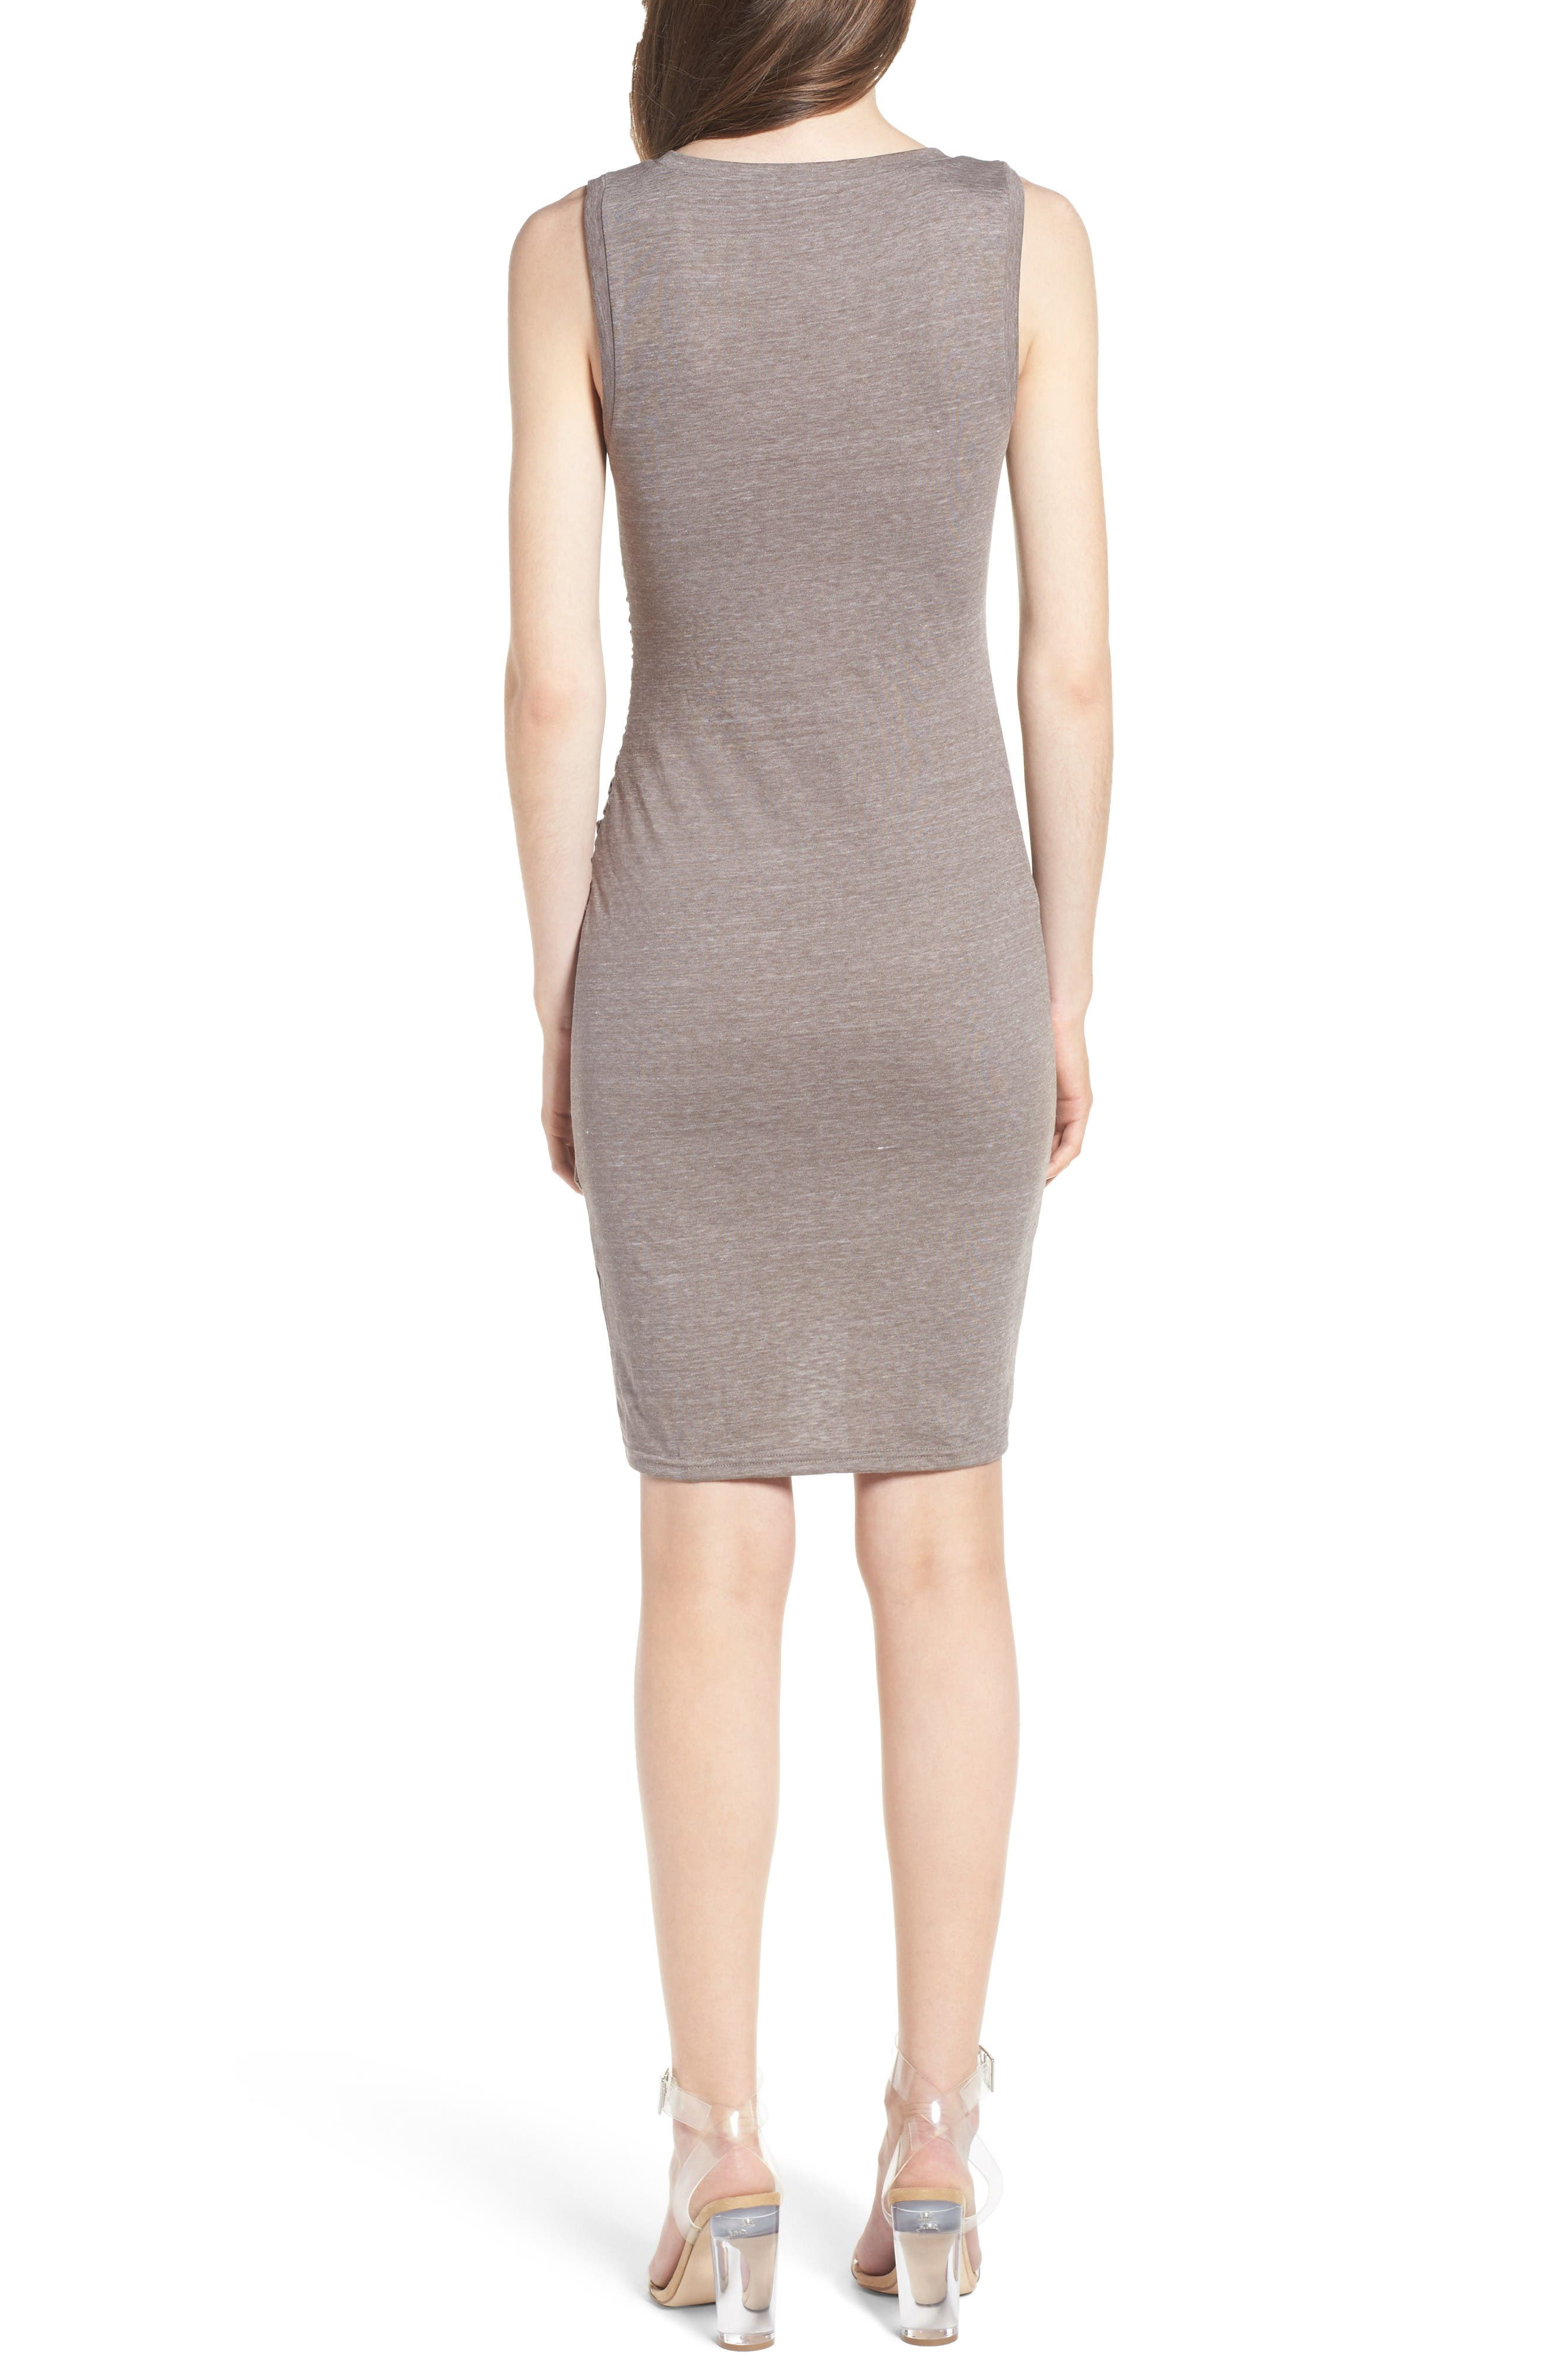 Ruched Body-Con Tank Dress,                             Alternate thumbnail 2, color,                             Tan Dusk Heather